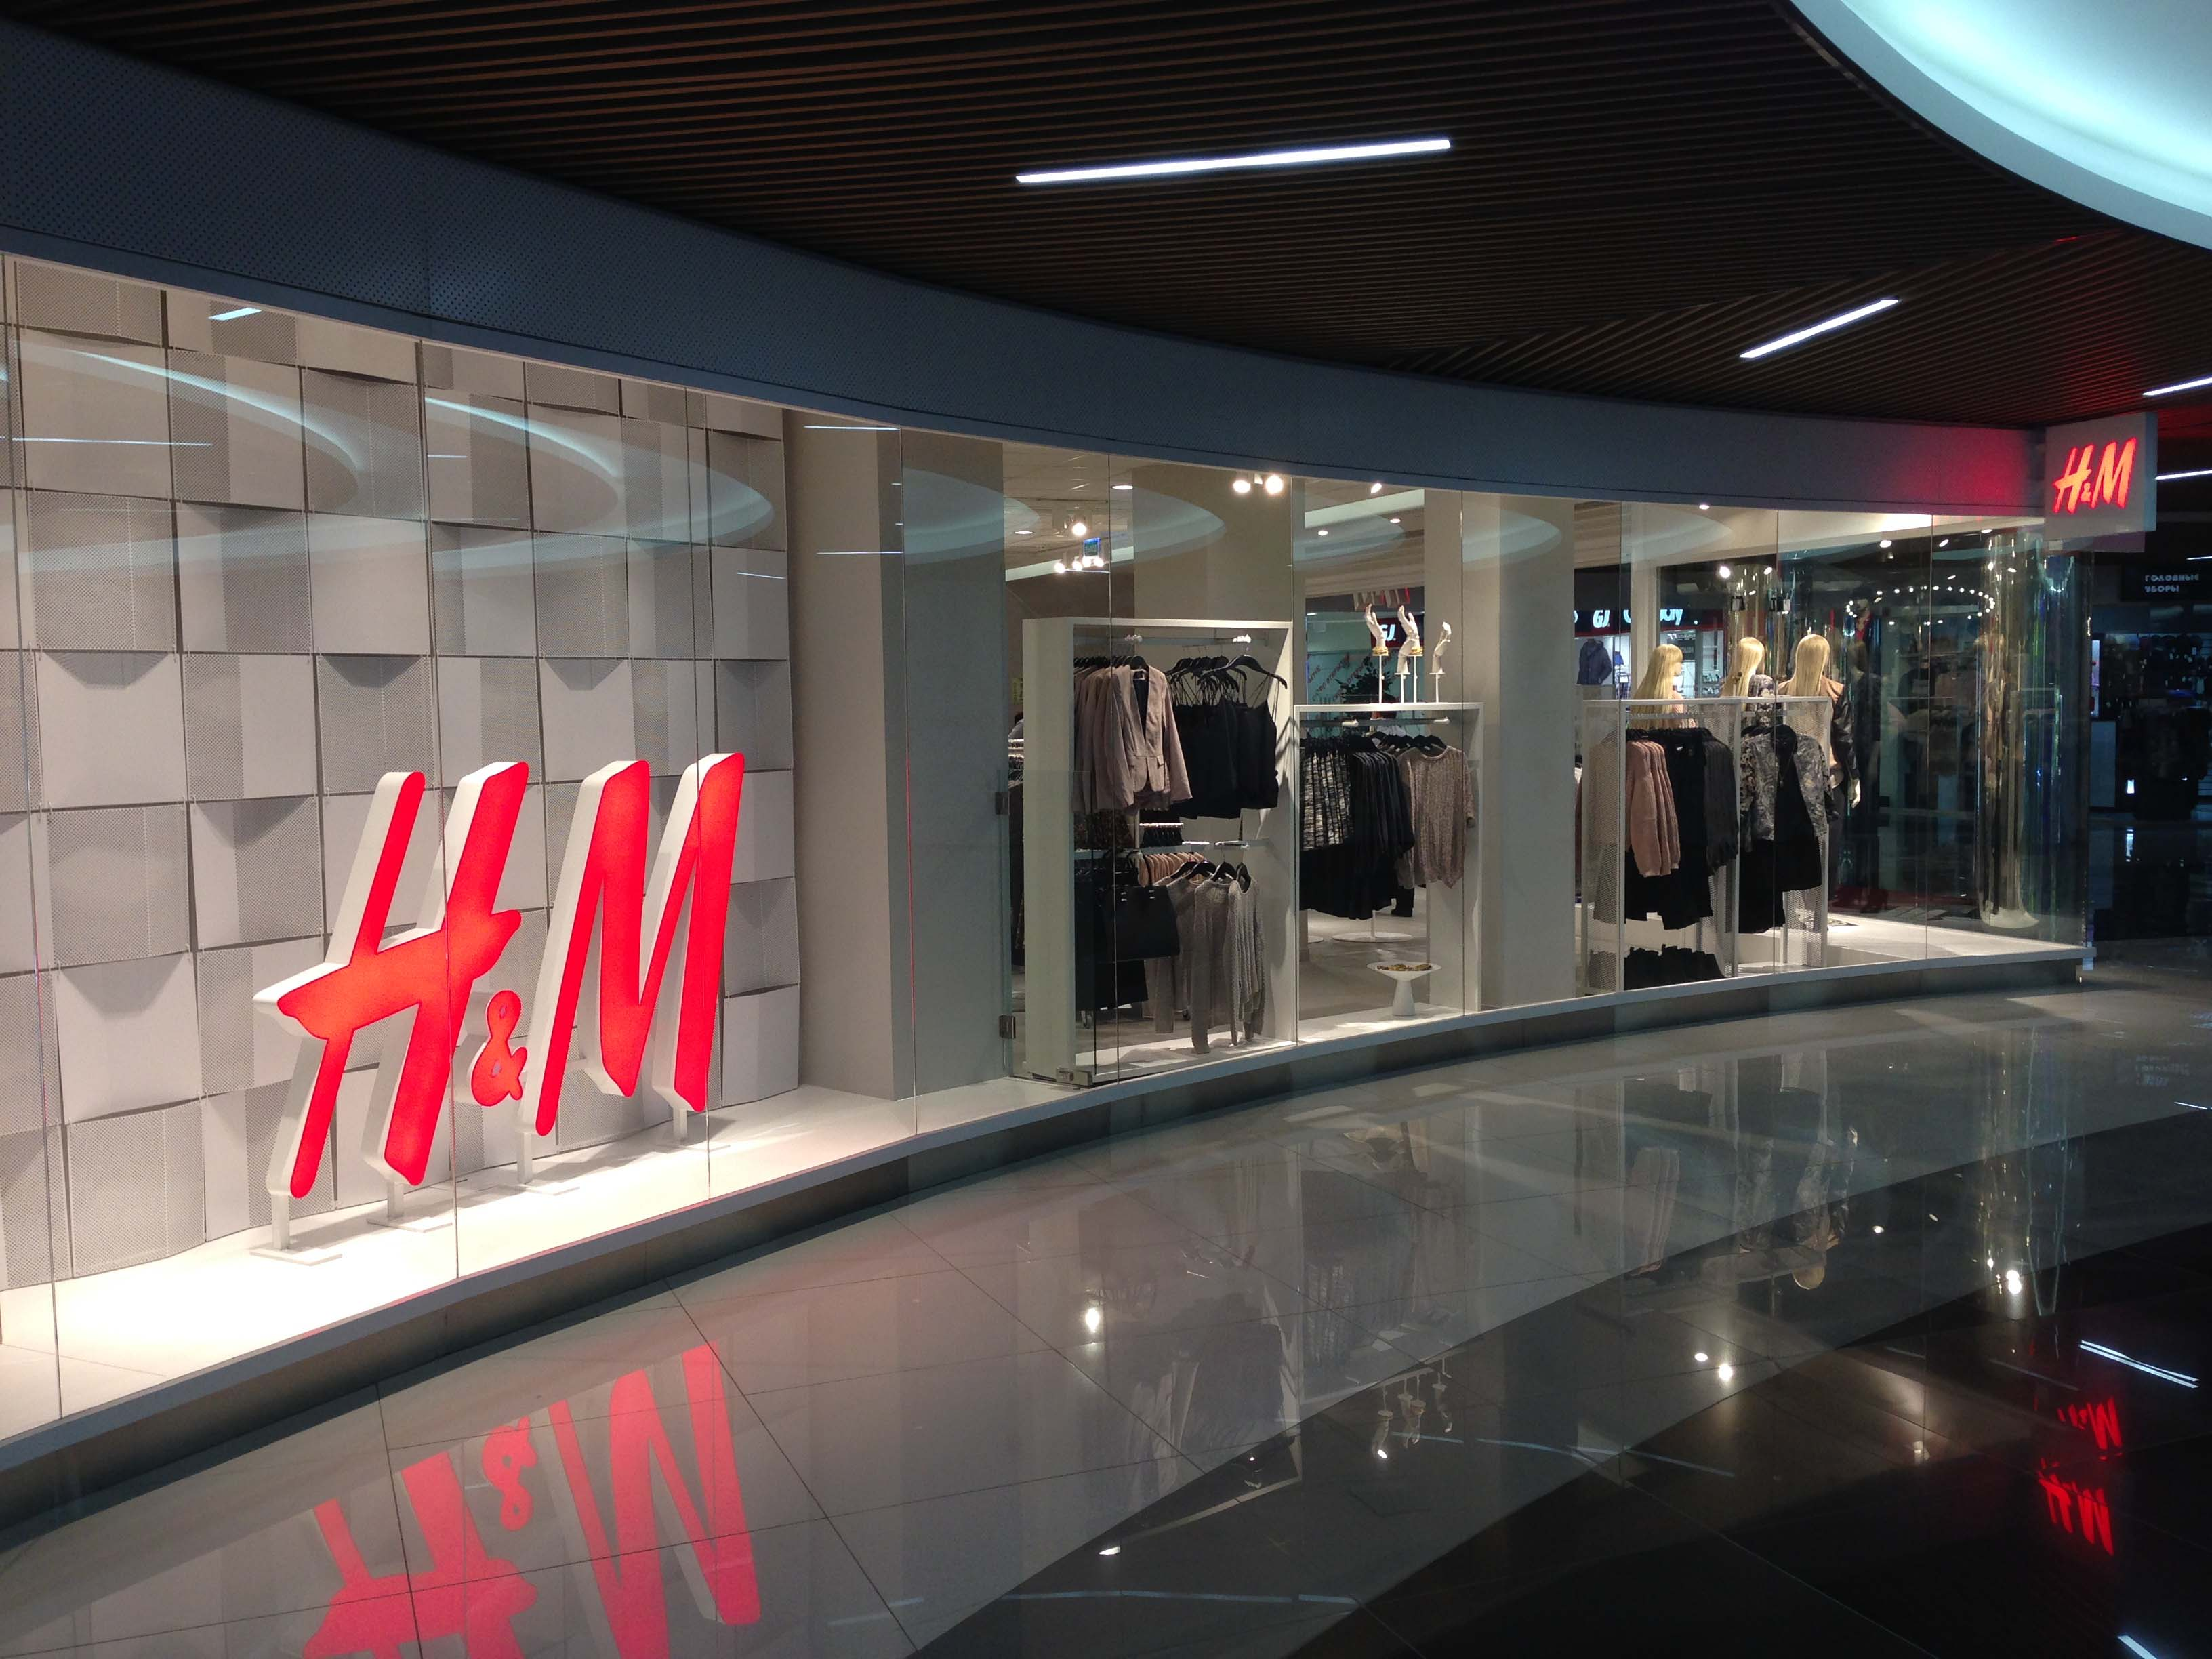 H&M clothes sizes will become bigger following complaints from customers. A spokesperson for the high street chain said: